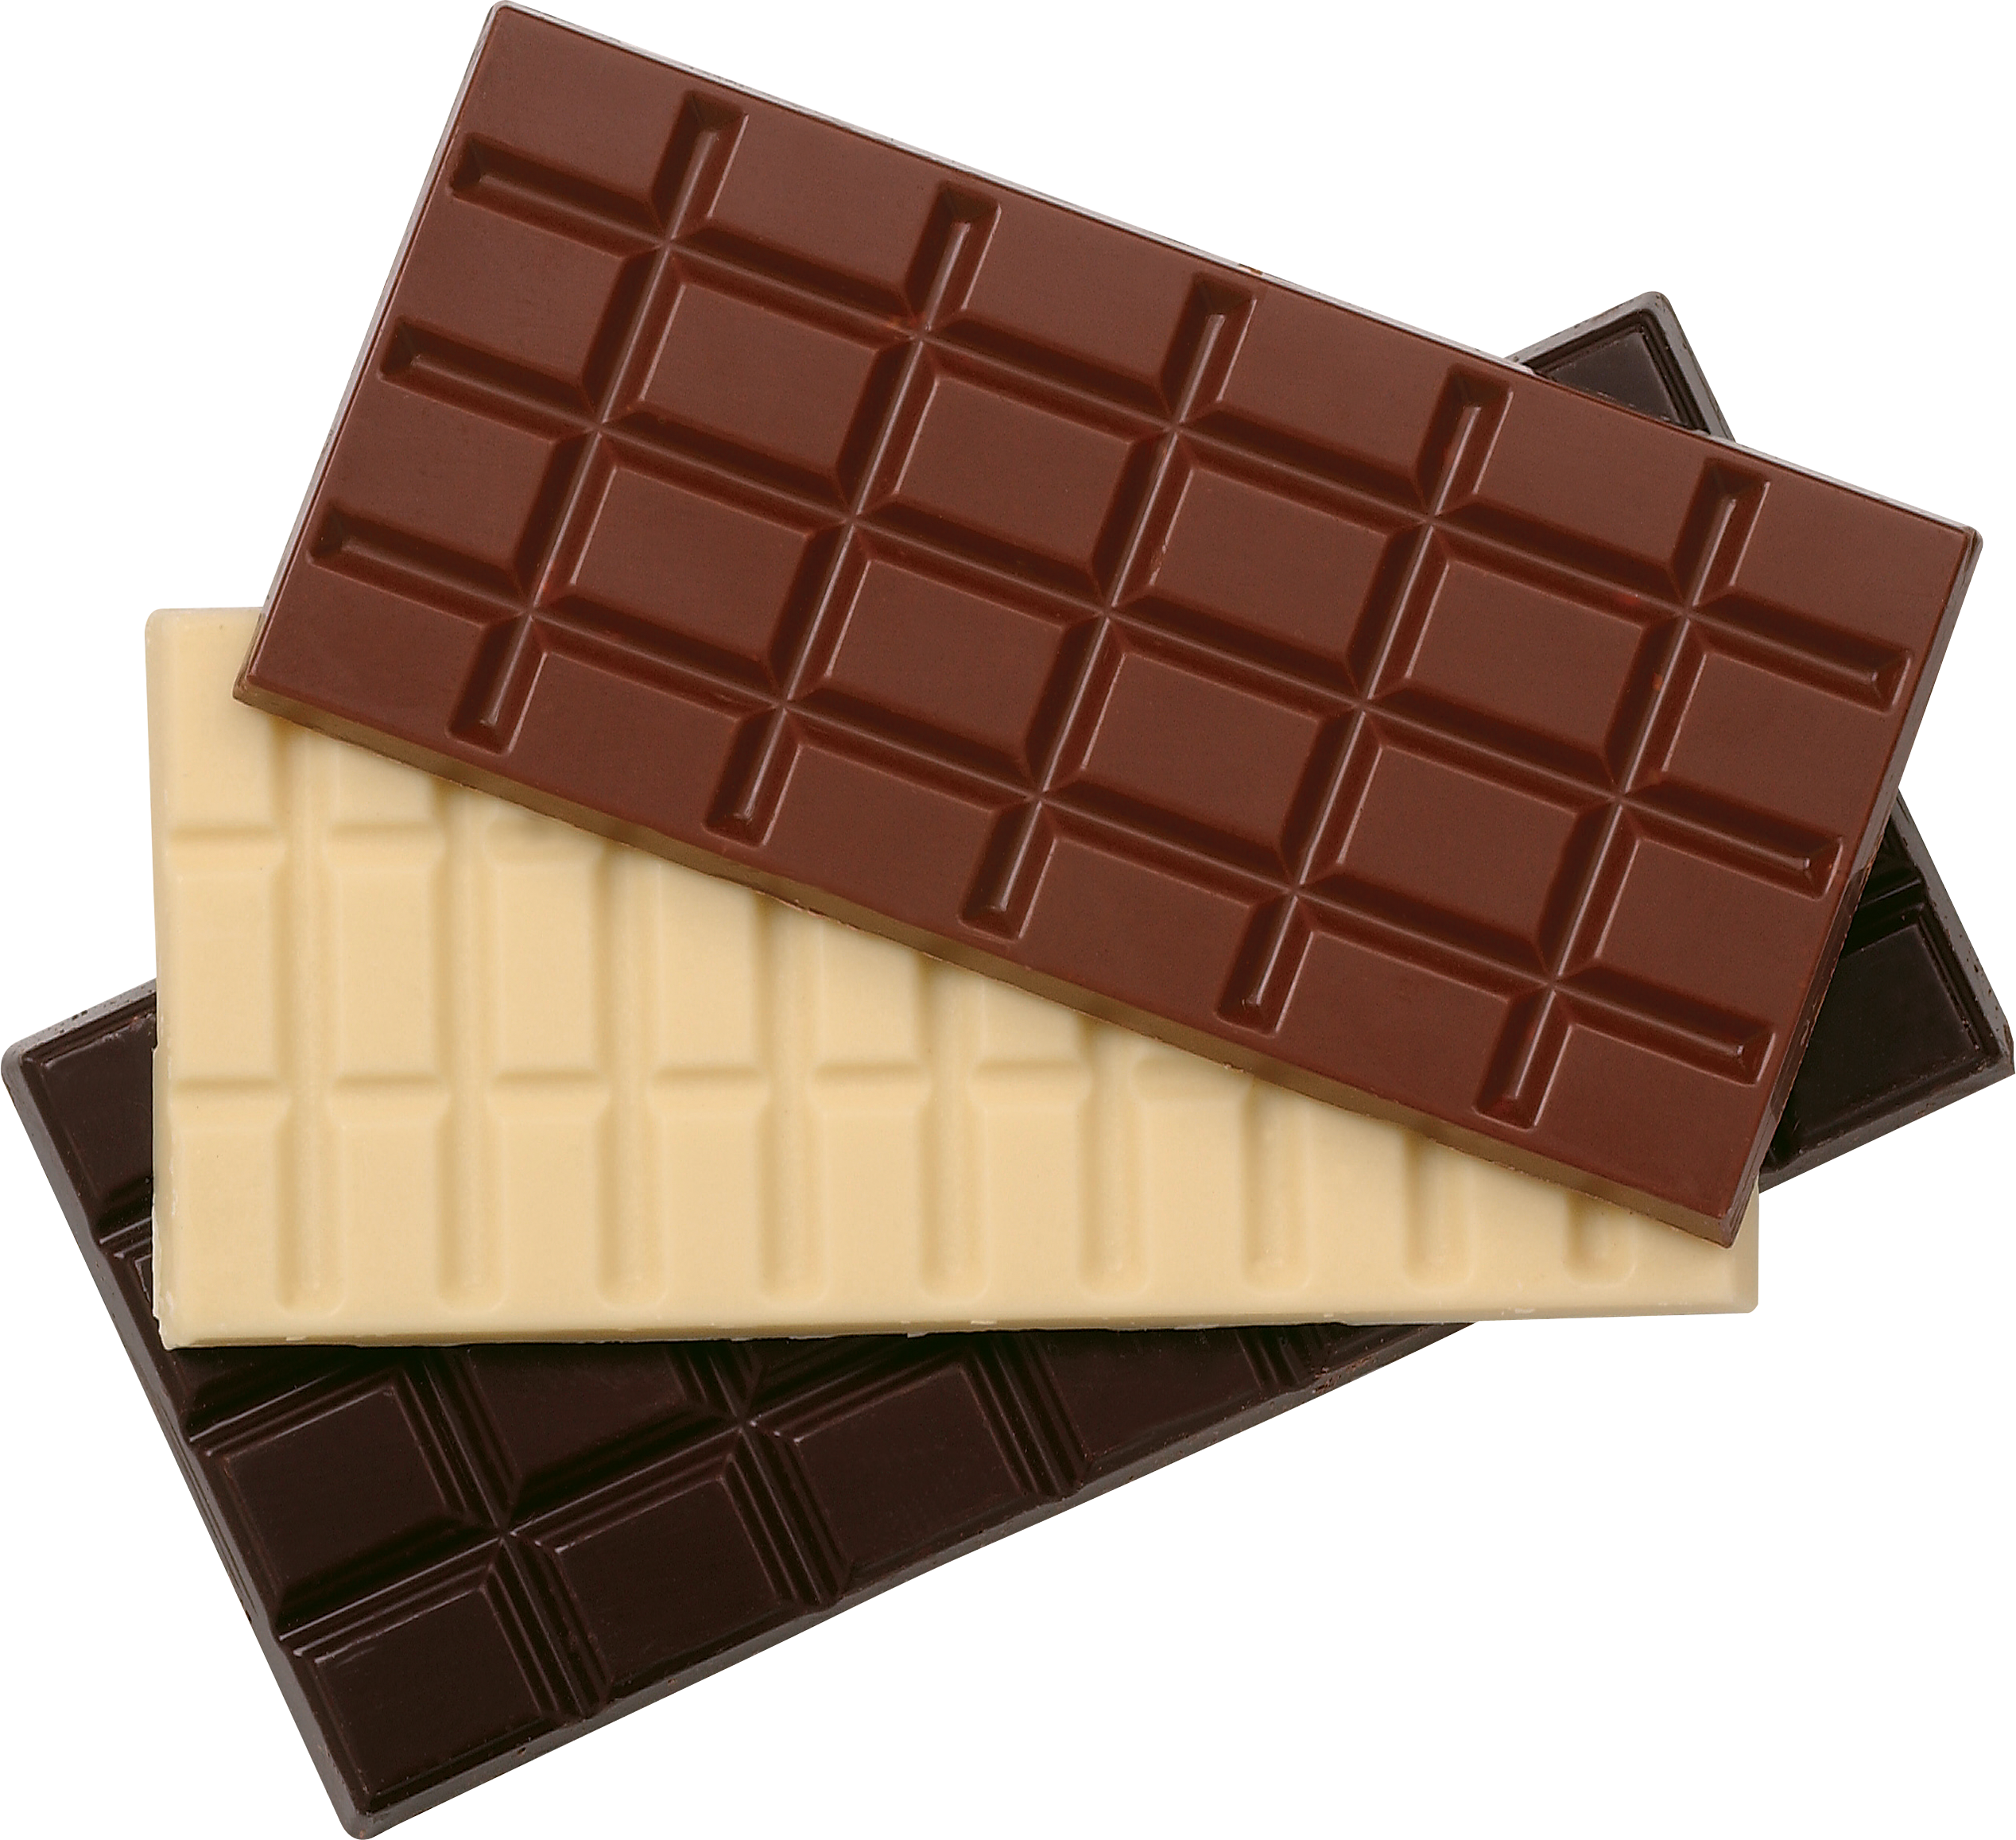 Chocolate Chocolate Drinks Chocolate Food Png